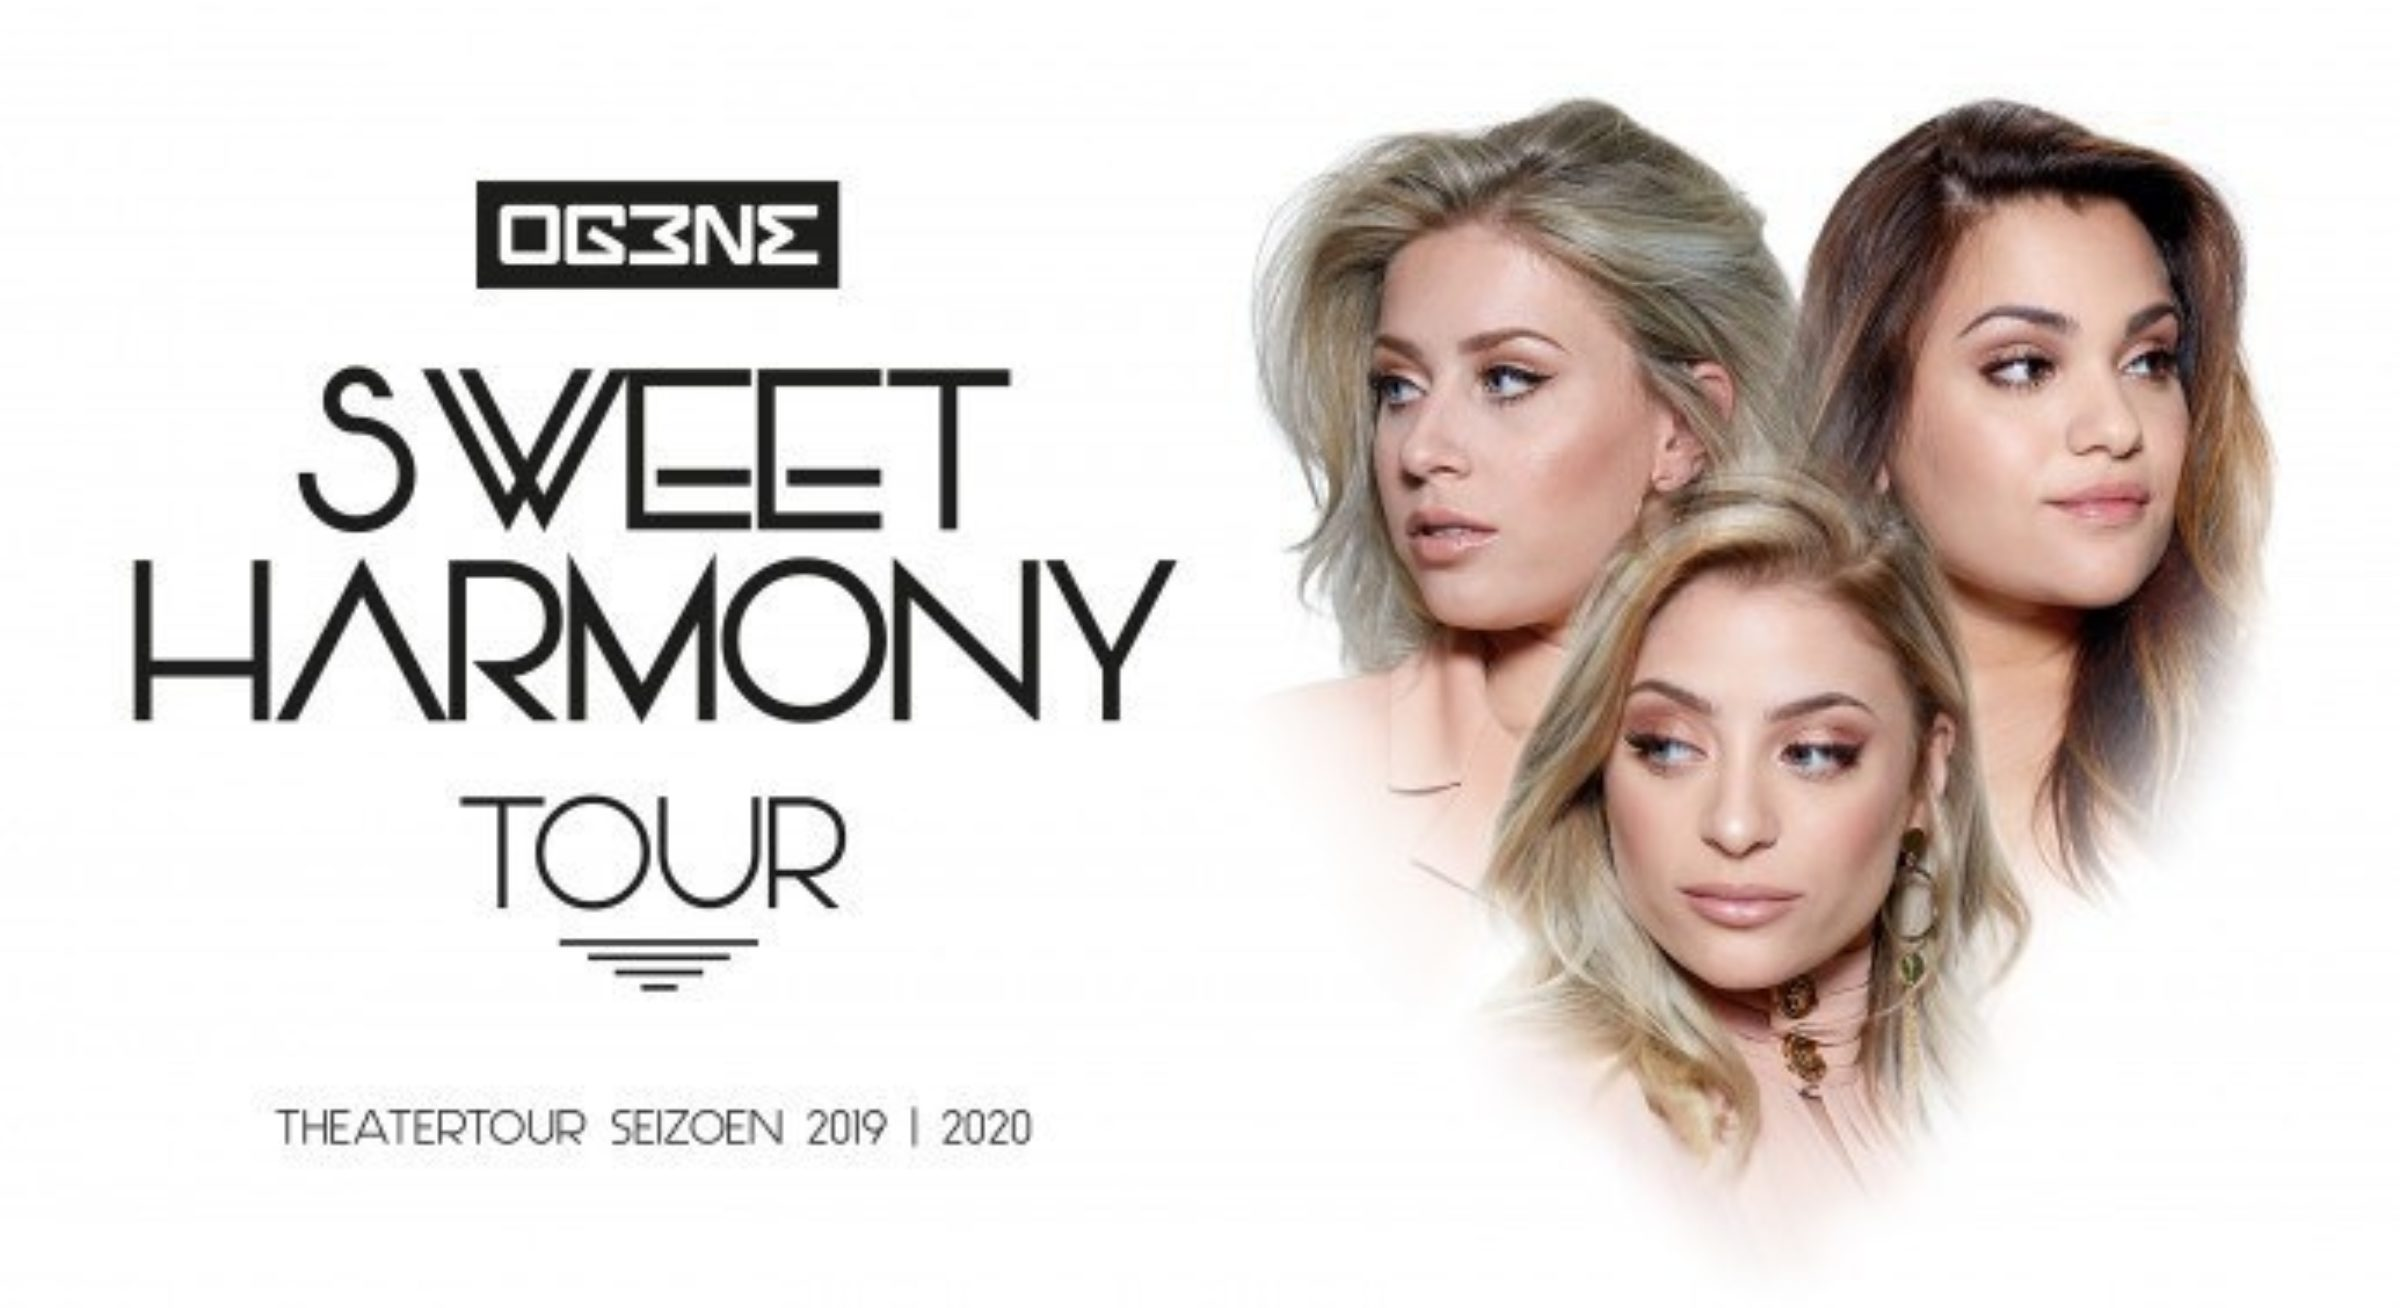 Sweet Harmony Tour 2296 1551264244 35hxcy5ns5